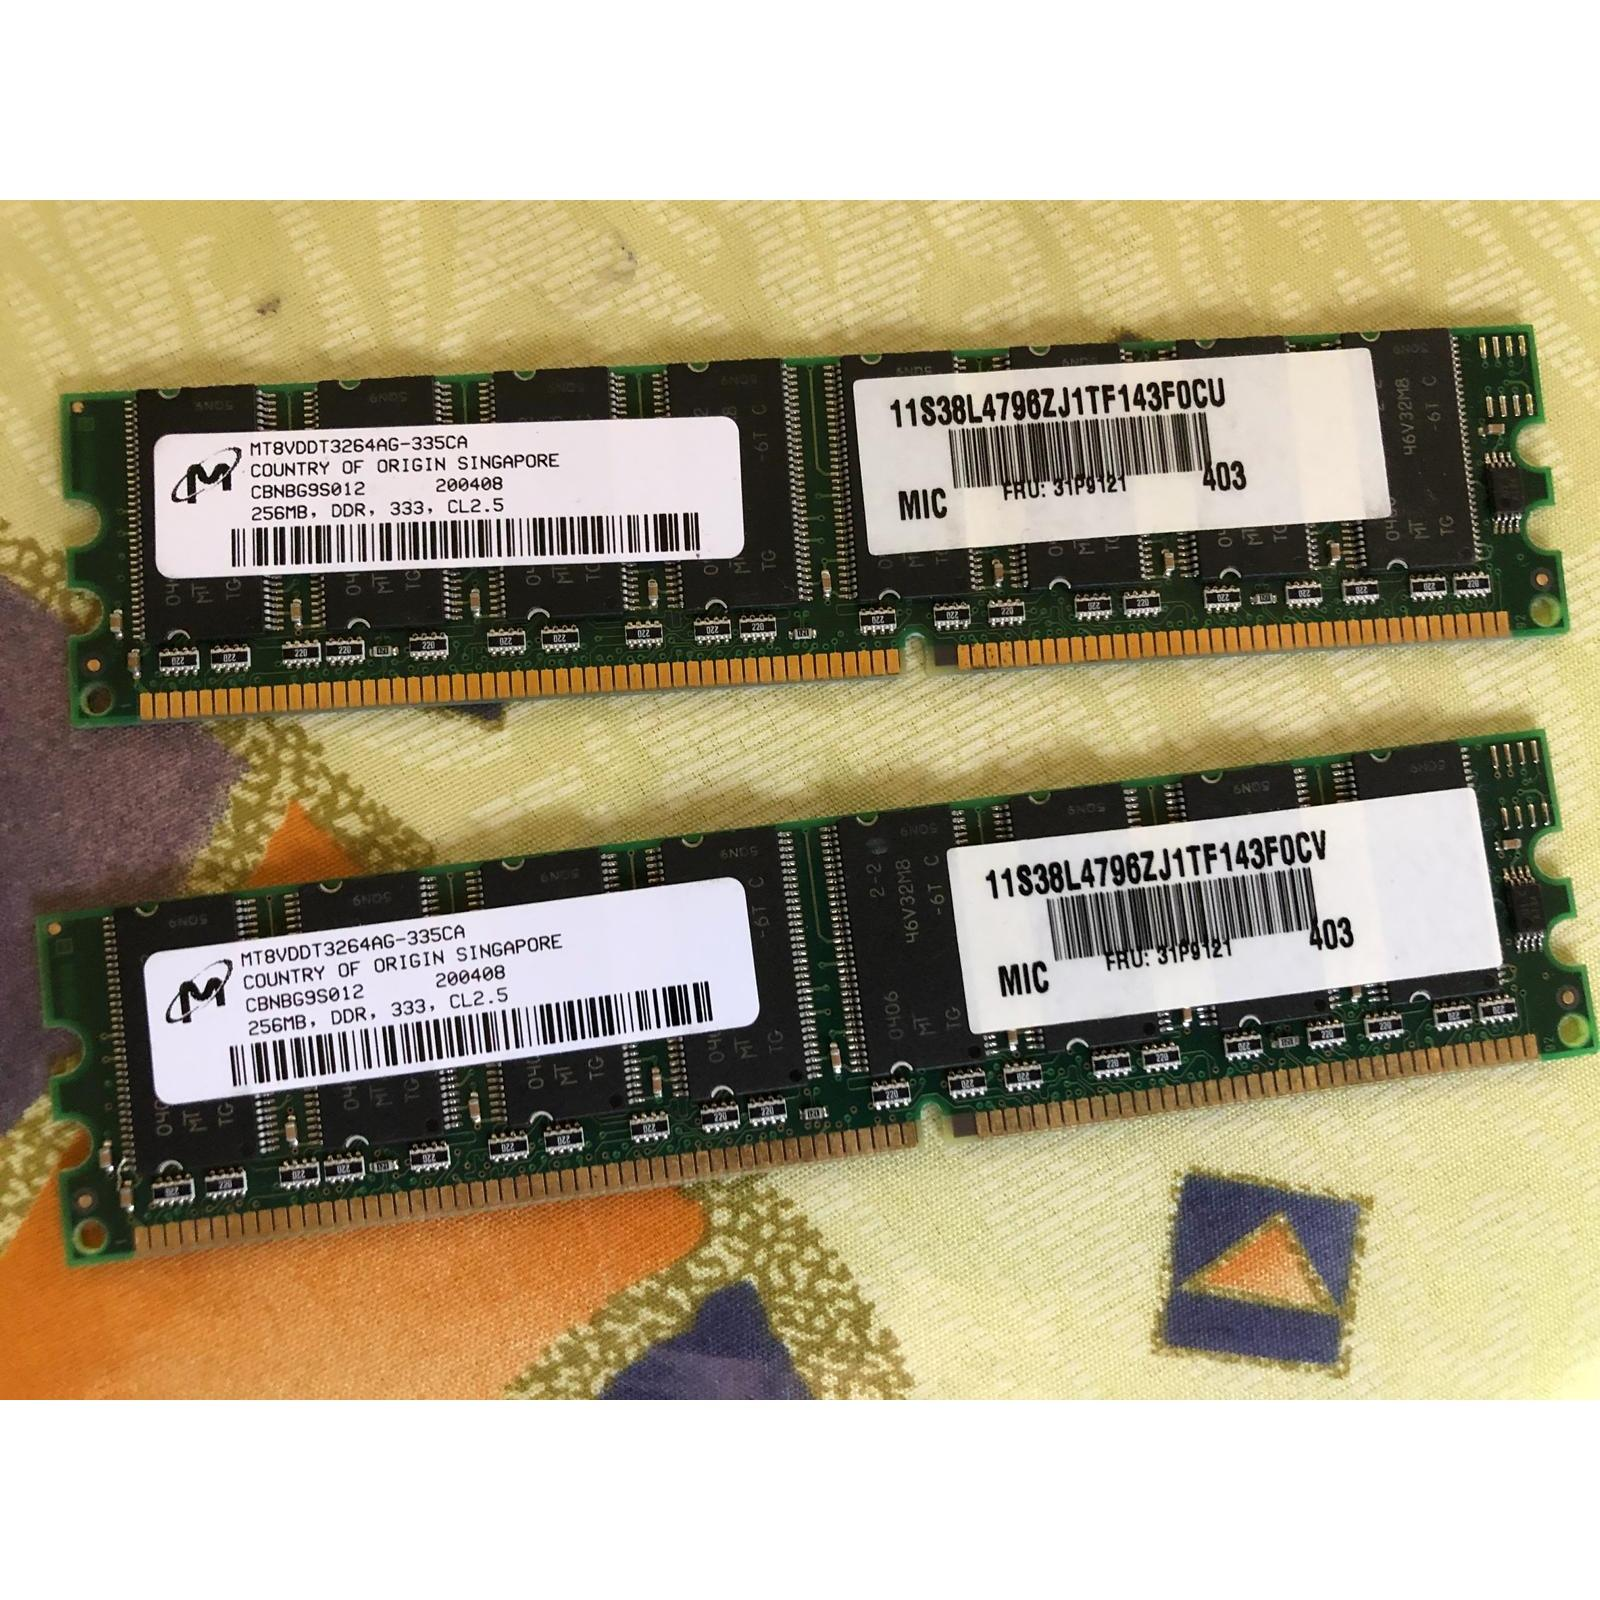 The Cheapest Price 512mb 2x 256mb Ddr 333mhz Ram Pc2700u 184pin Ddr1 1 512 Mb 256mbddr Pc Memory Computer